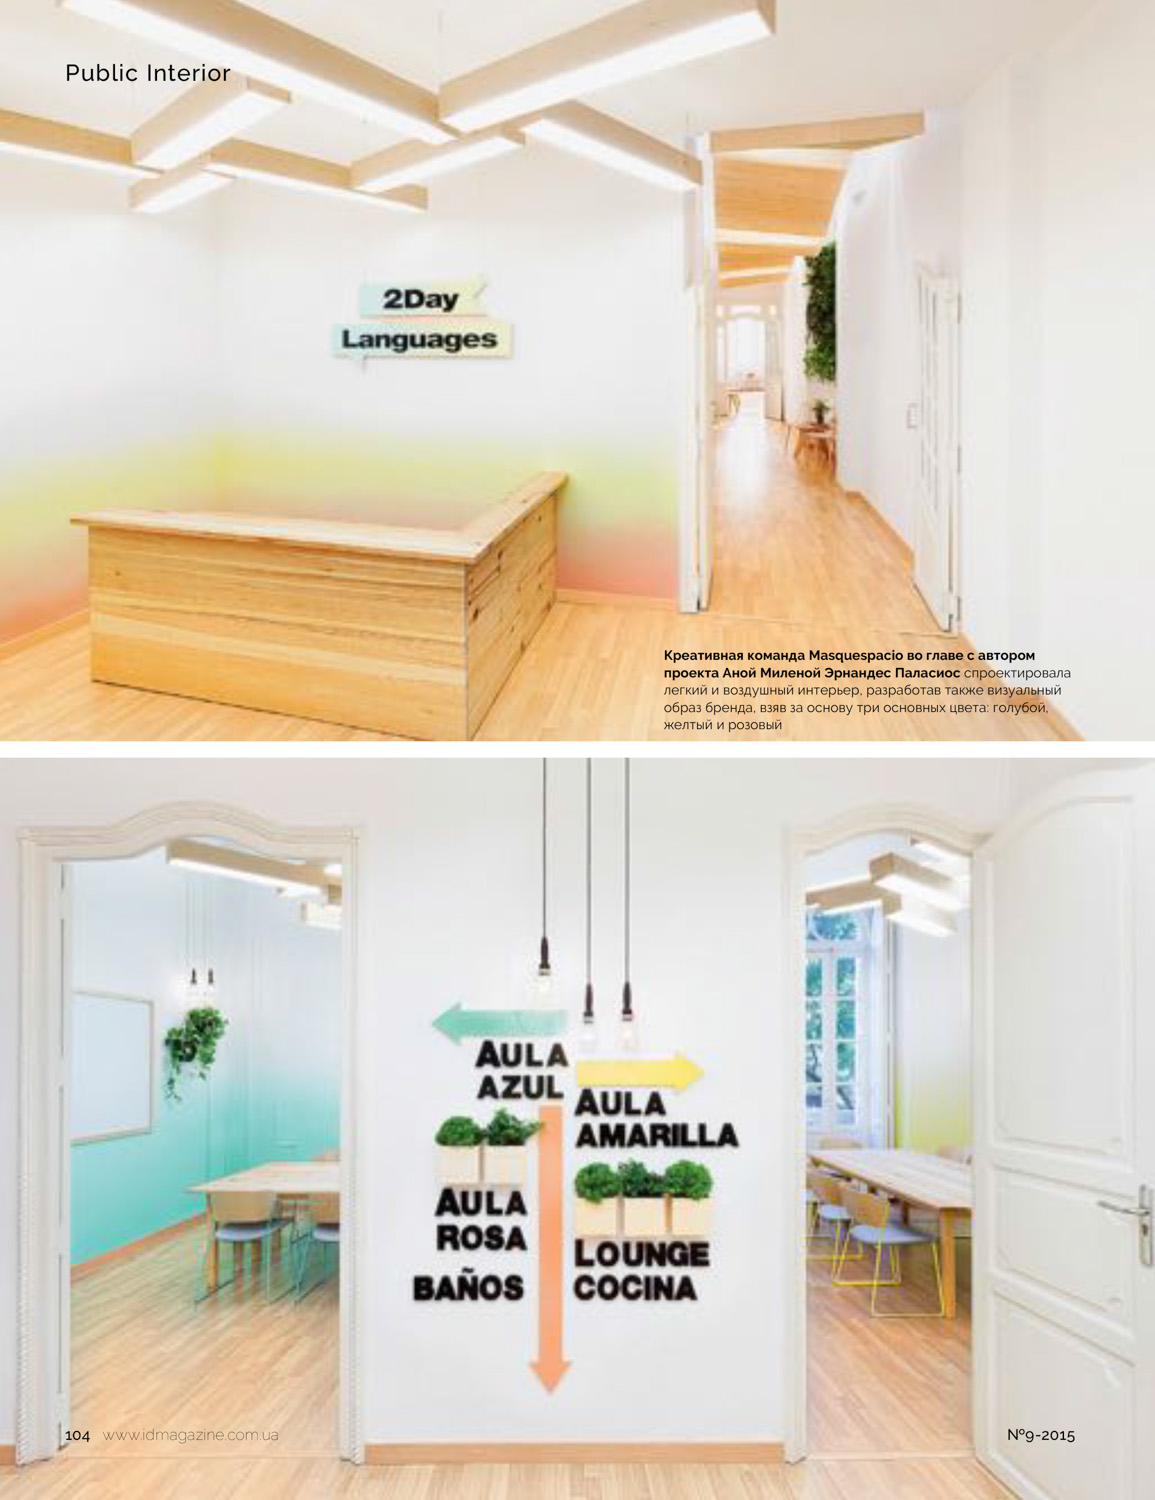 interior-design-masquespacio-2day-languages-3